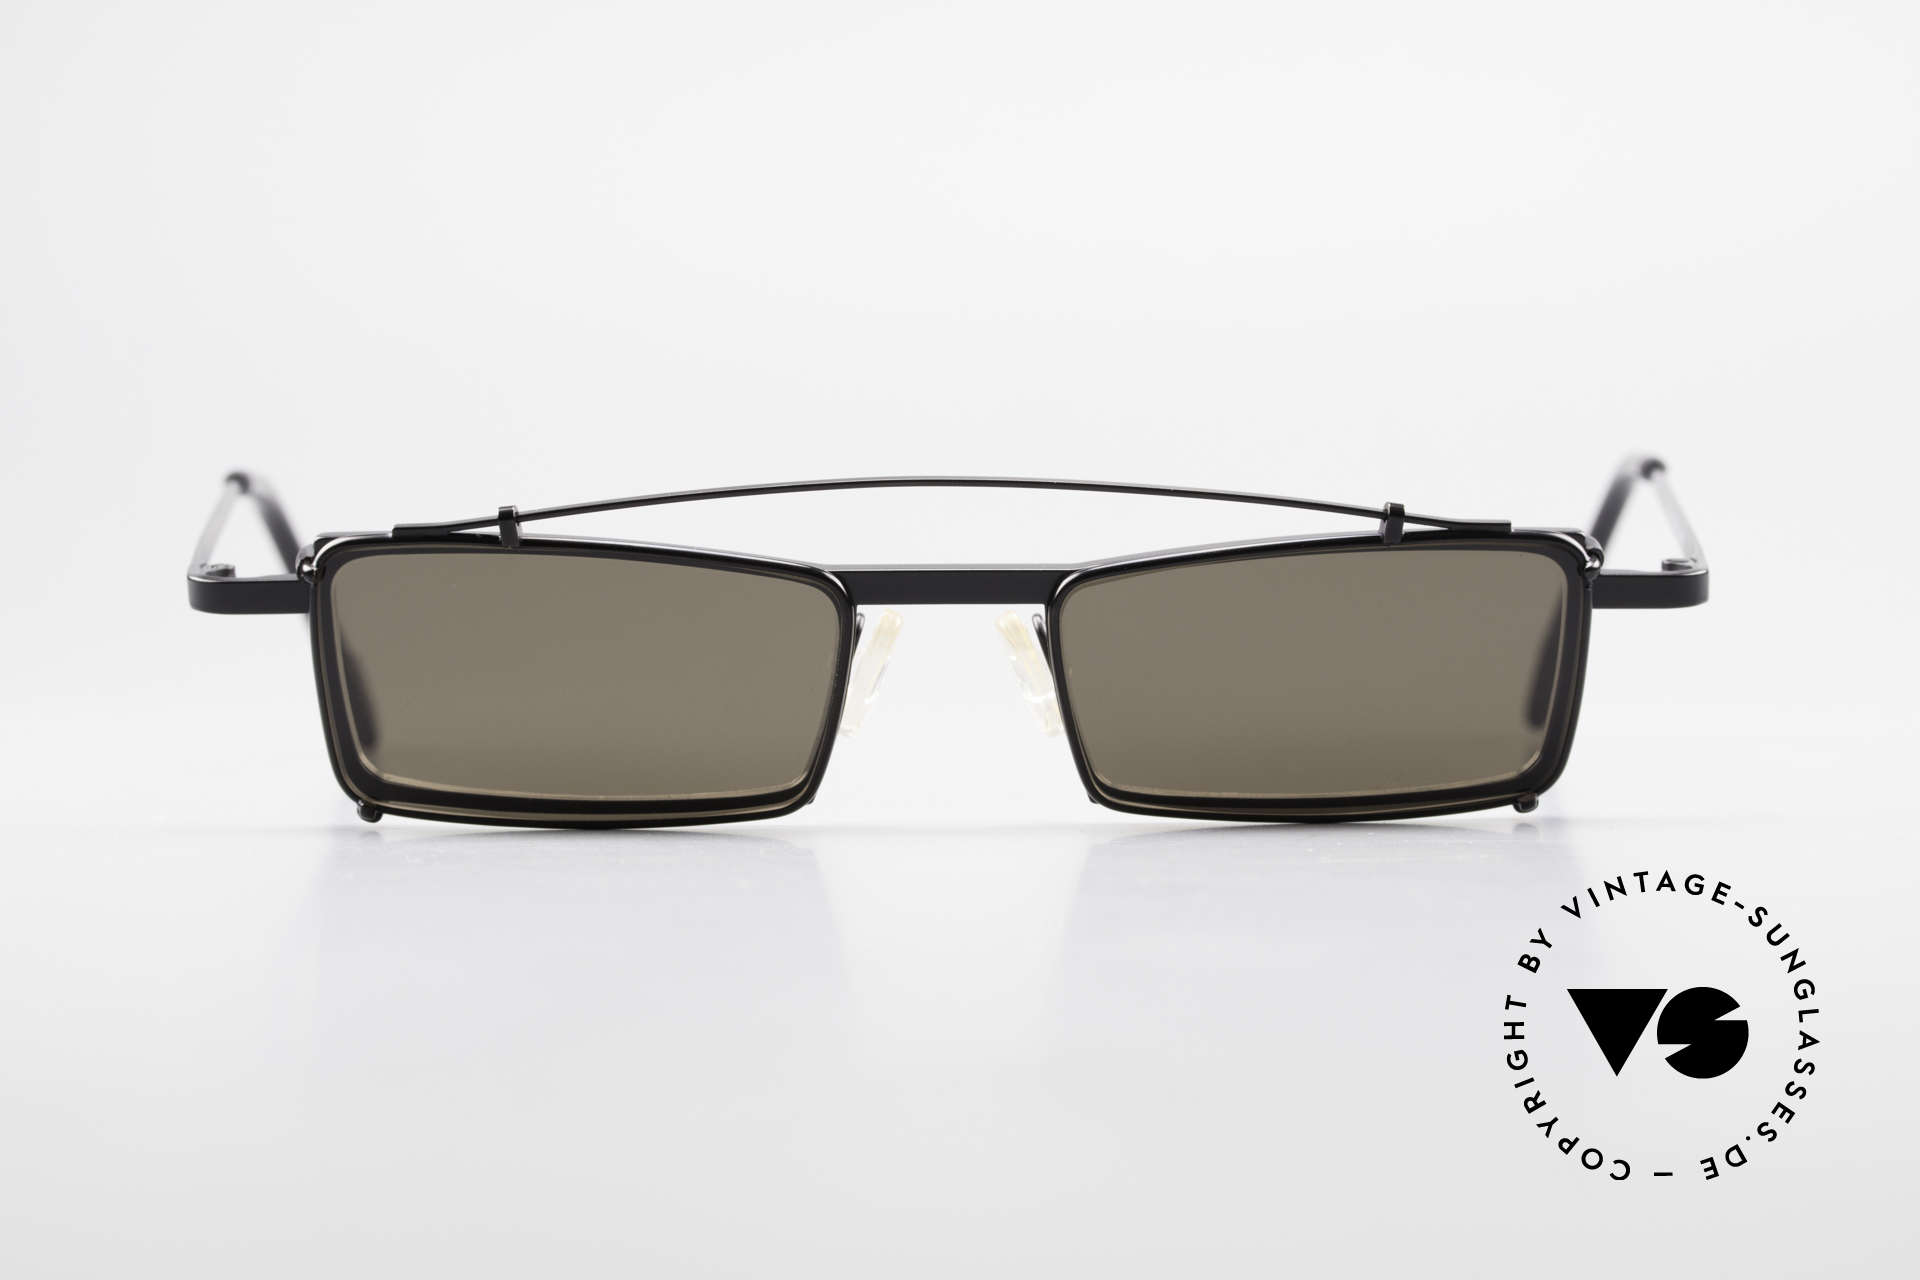 Theo Belgium XM Square Designer Frame Clip On, founded in 1989 as 'opposite pole' to the 'mainstream', Made for Men